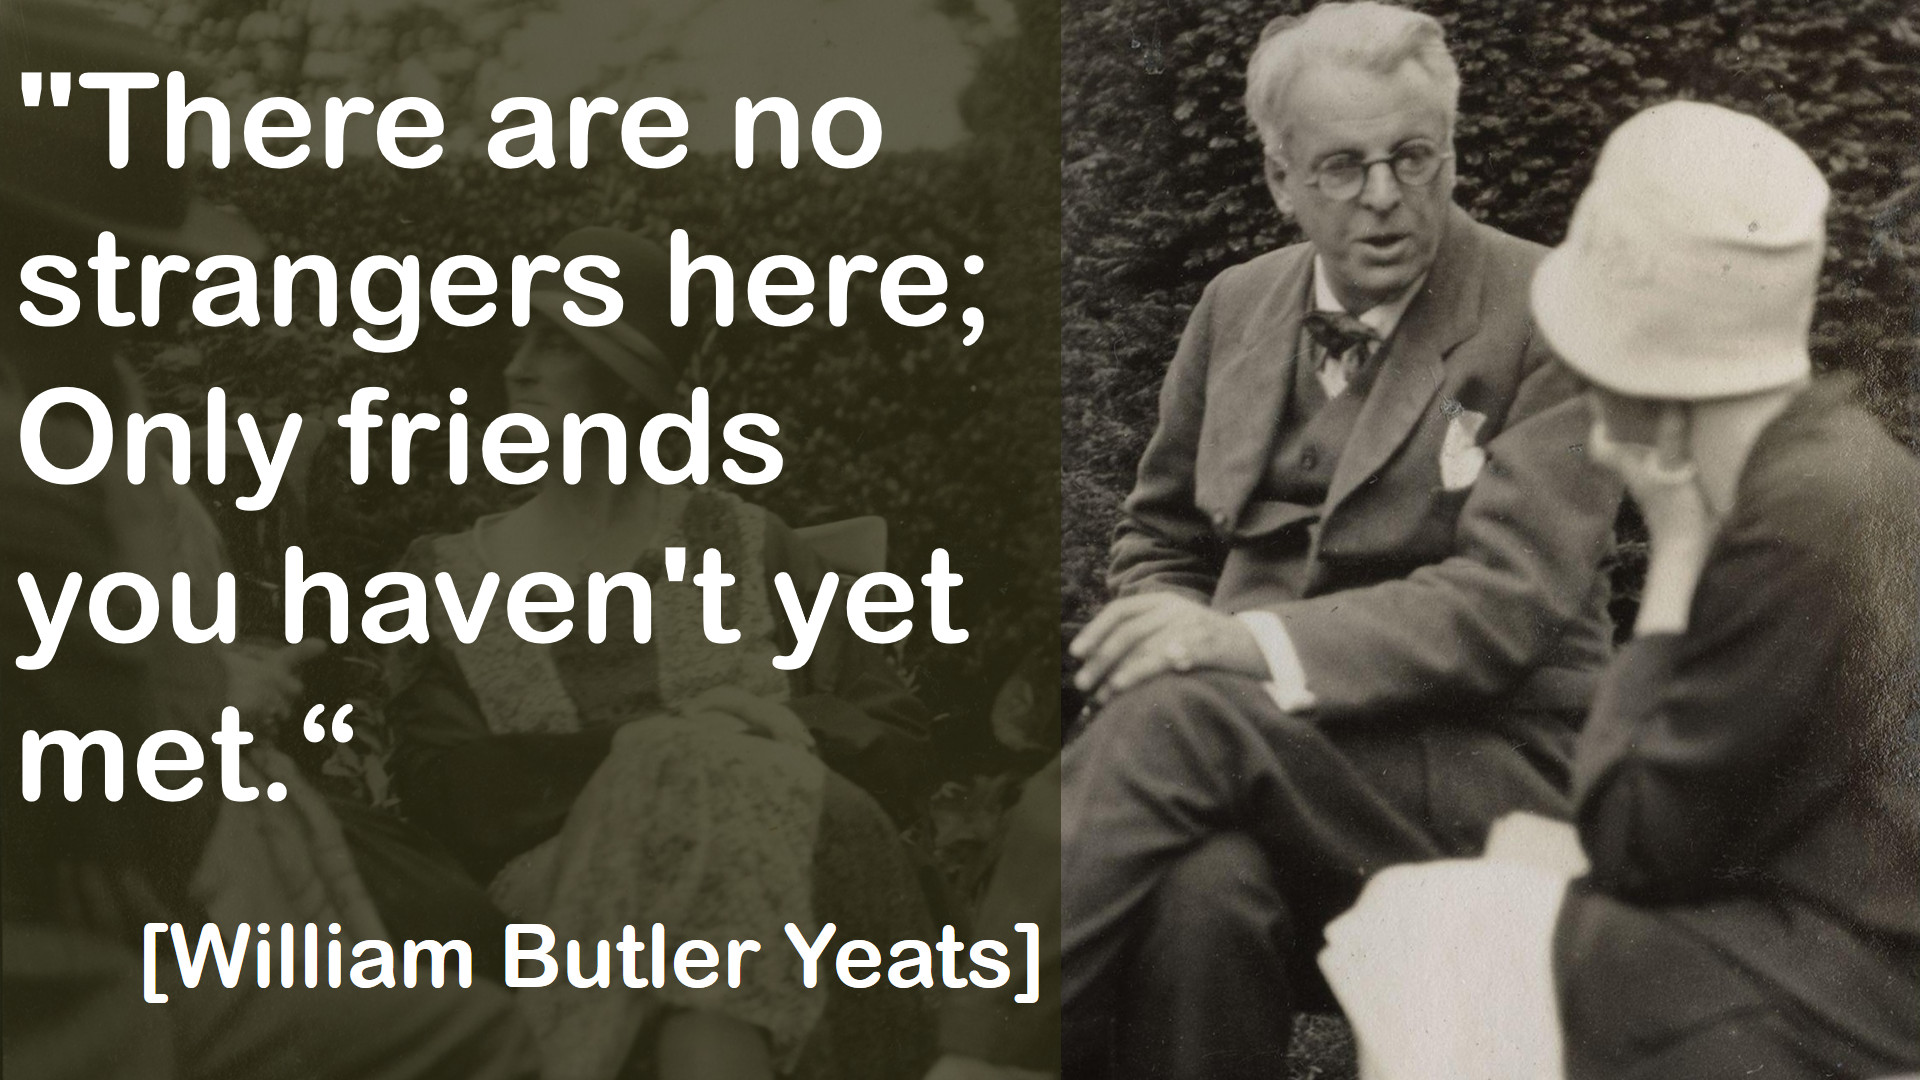 william butler yeates essay A prayer for my daughter by william butler yeats opens with an image of the new born kid kiping in a cradle a storm is ramping with great rage outside his abode a great somberness is on yeats head and is consumed with anxiousness as to how to protect his kid from the tide of read more.